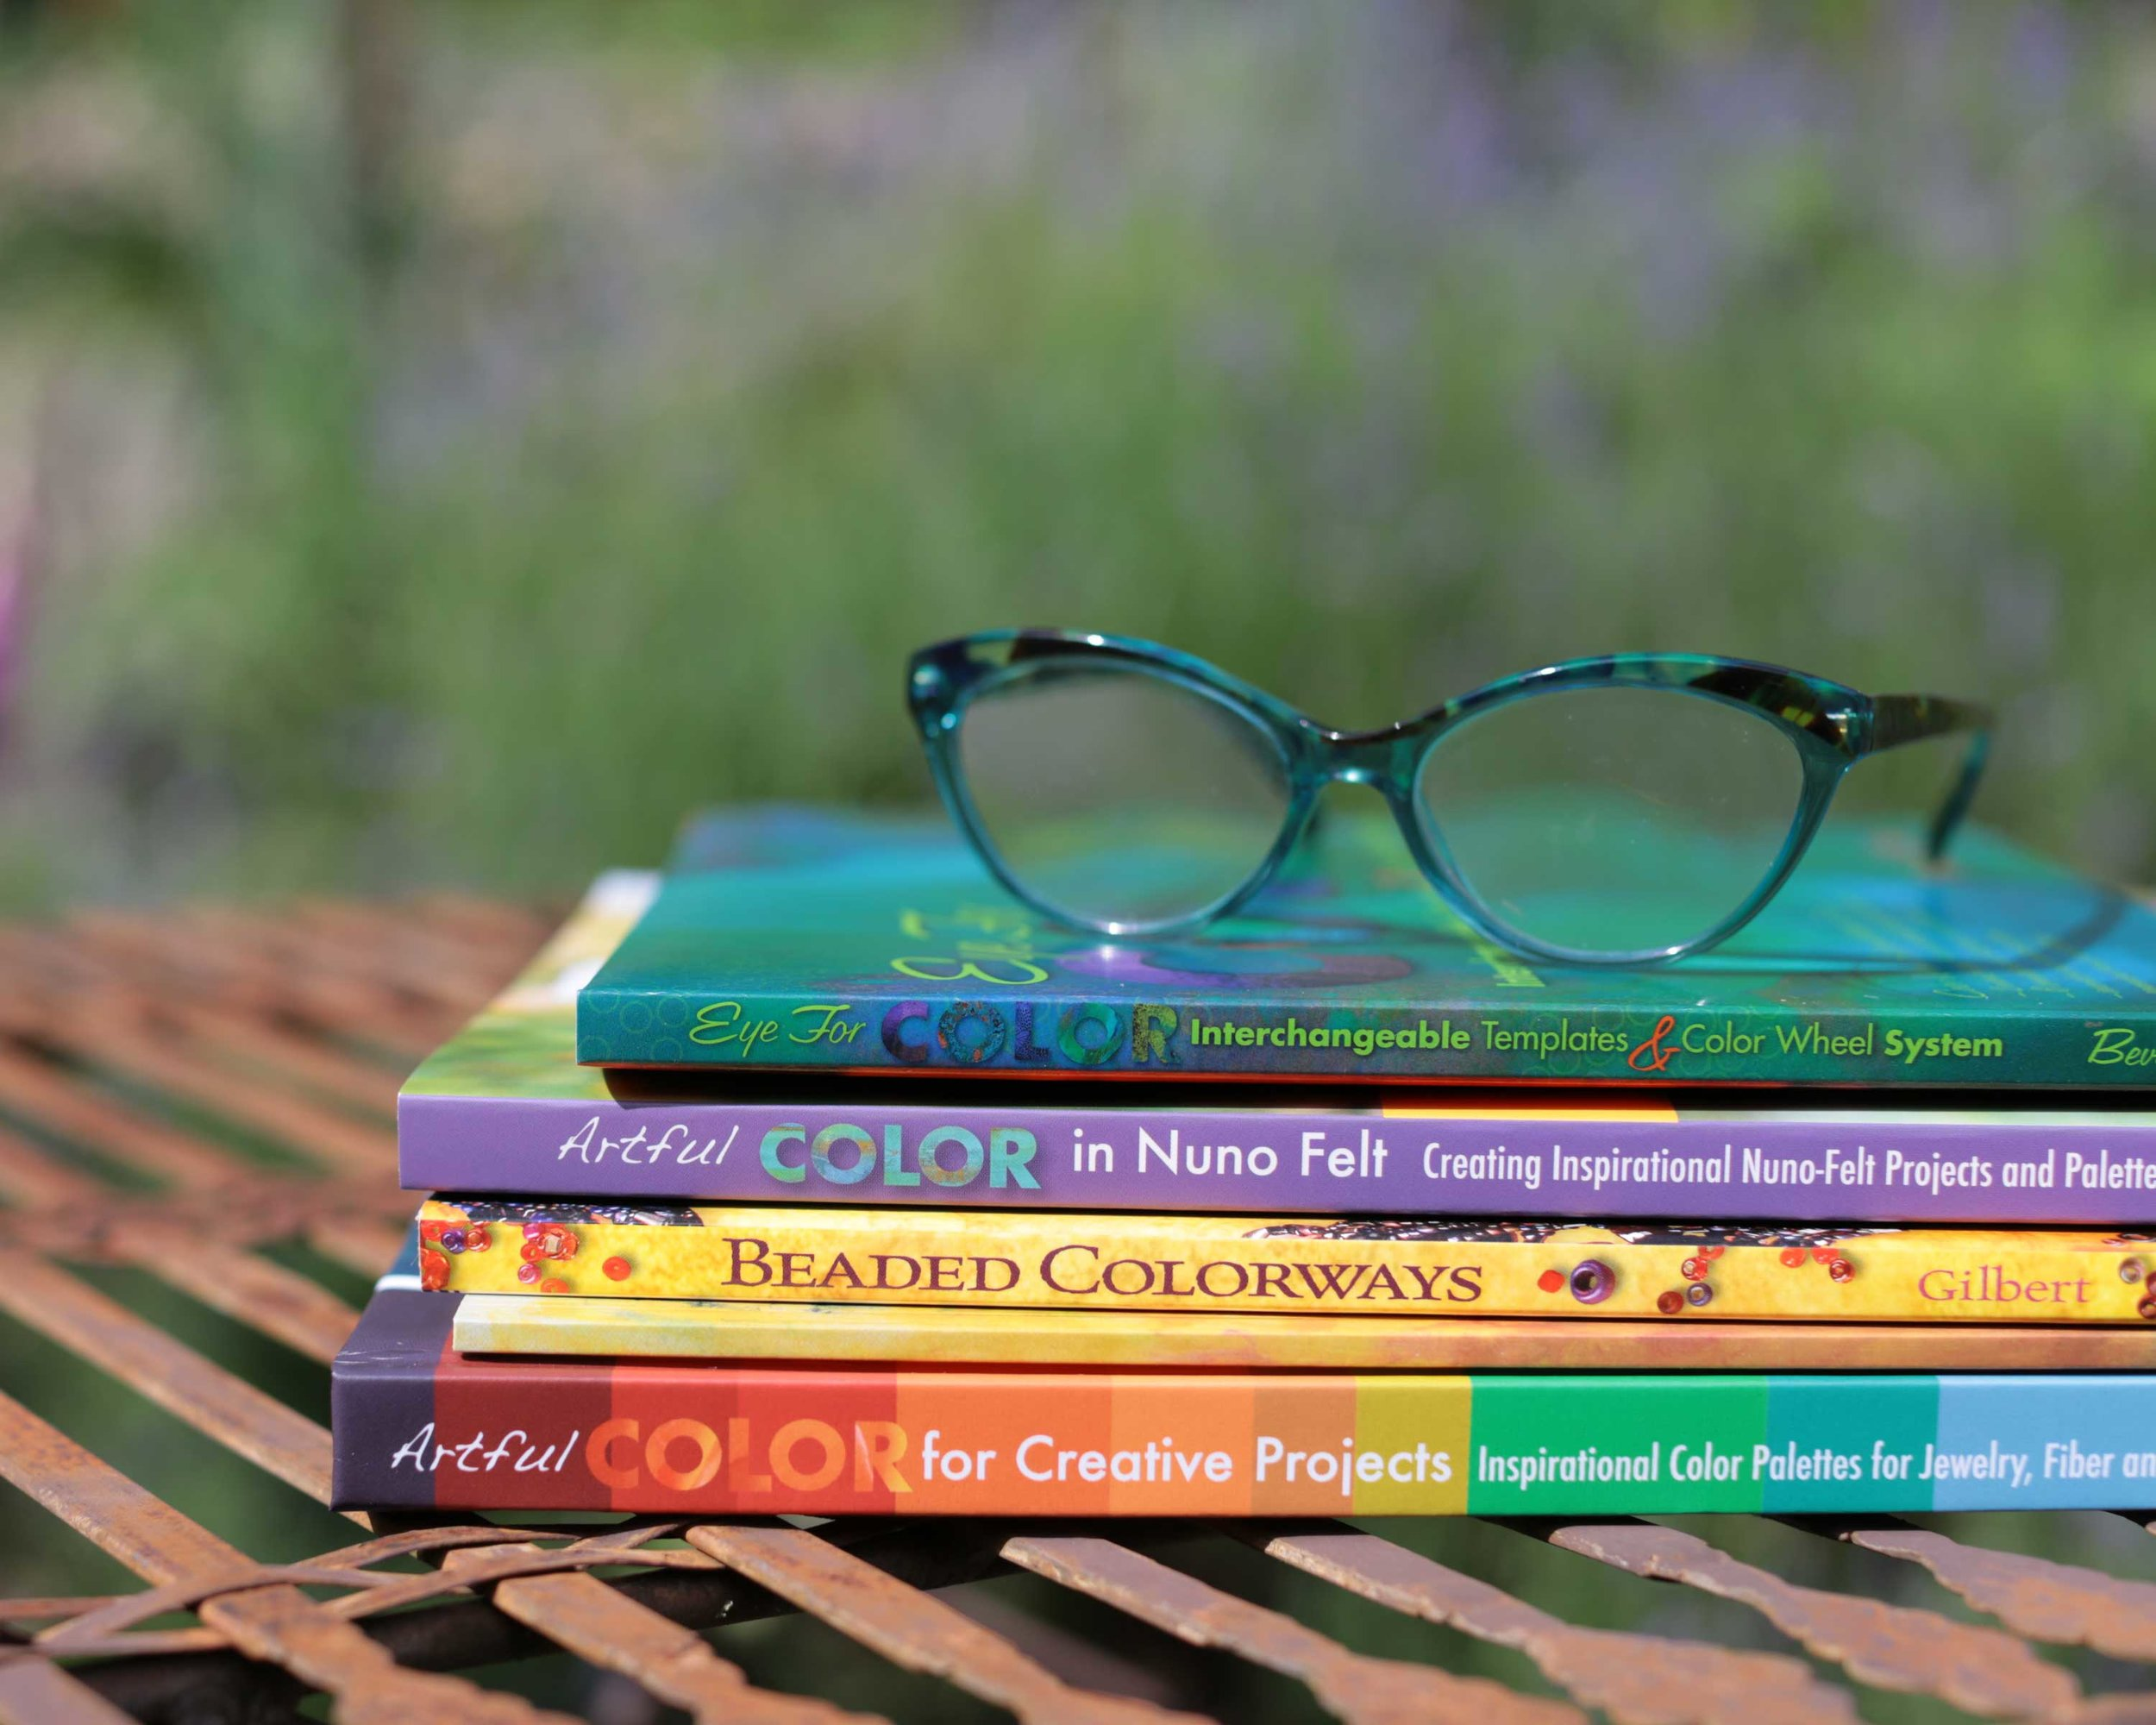 Virtual Yard Sale! - Imperfect books at perfect prices!